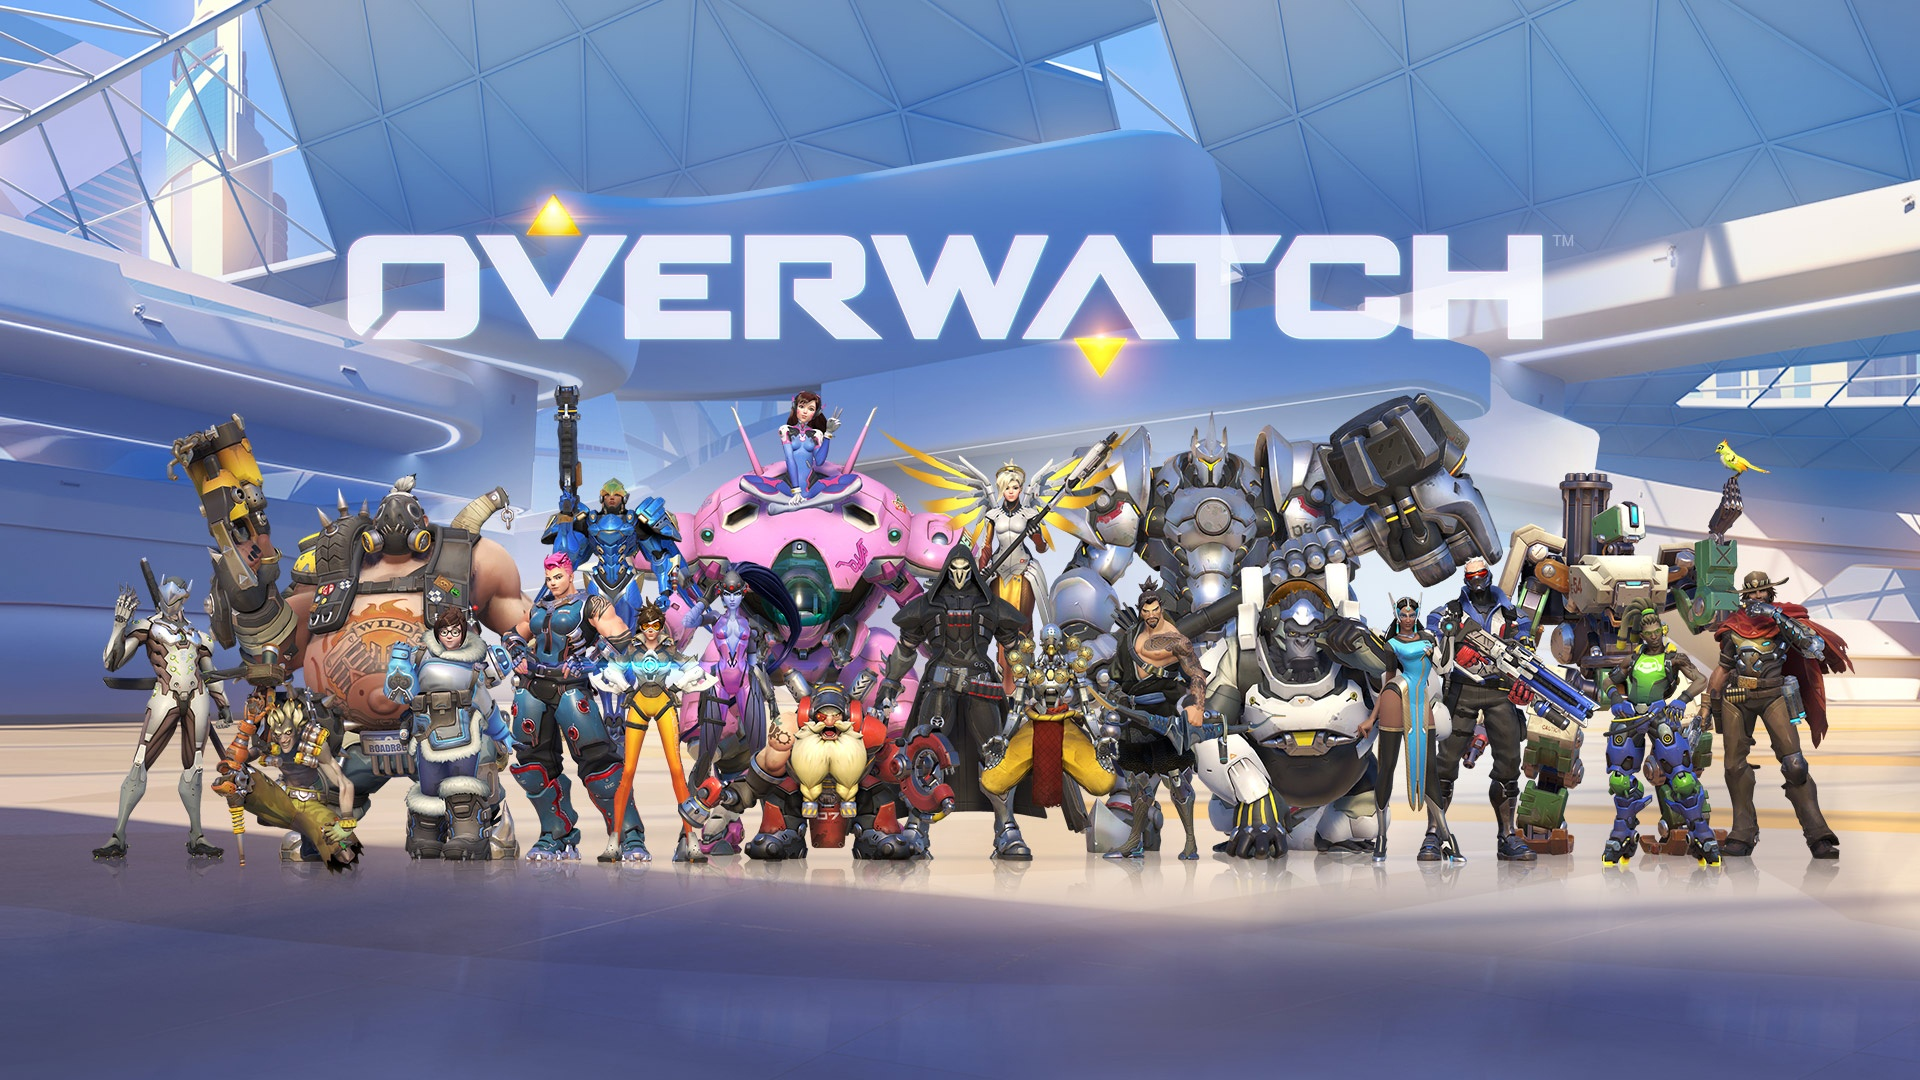 Overwatch HD Wallpapers